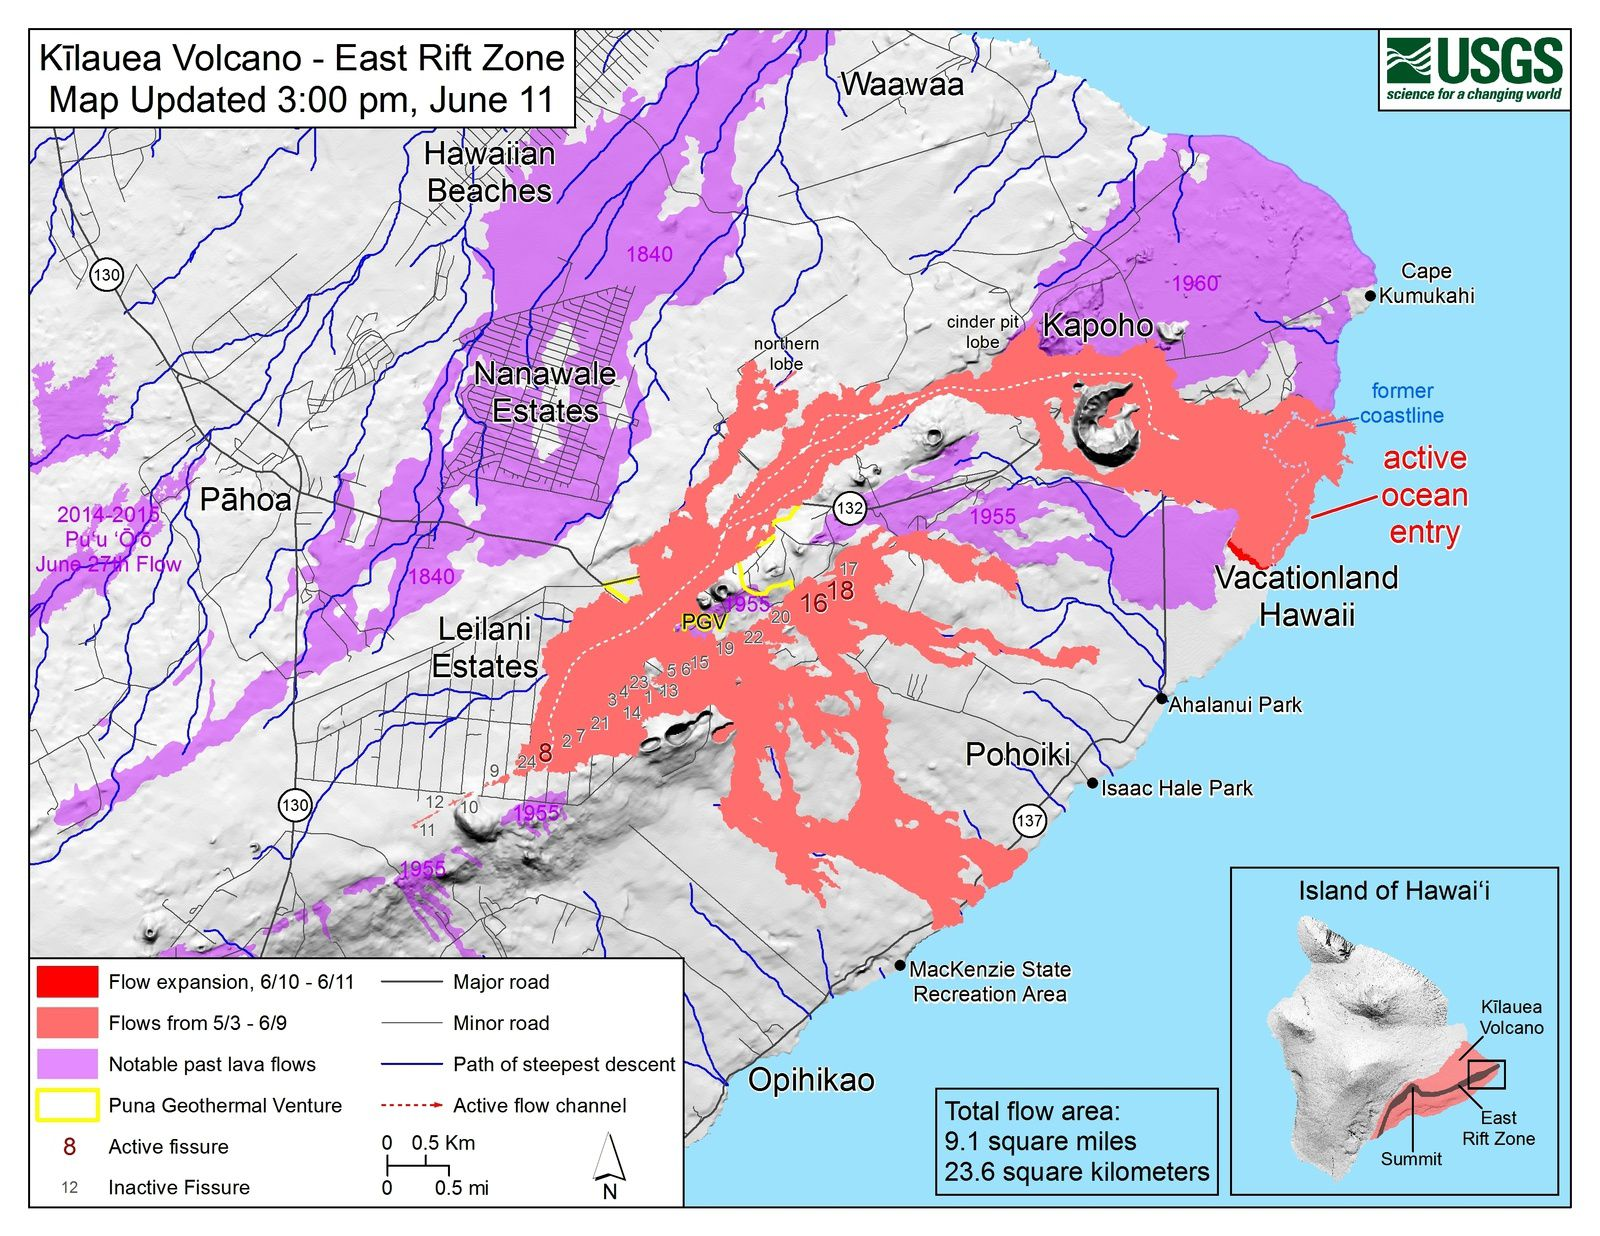 Kilauea East rift zone - map of active flows at 11.06.2018 / 15h - note the old blue dotted coastline - HVO-USGS map